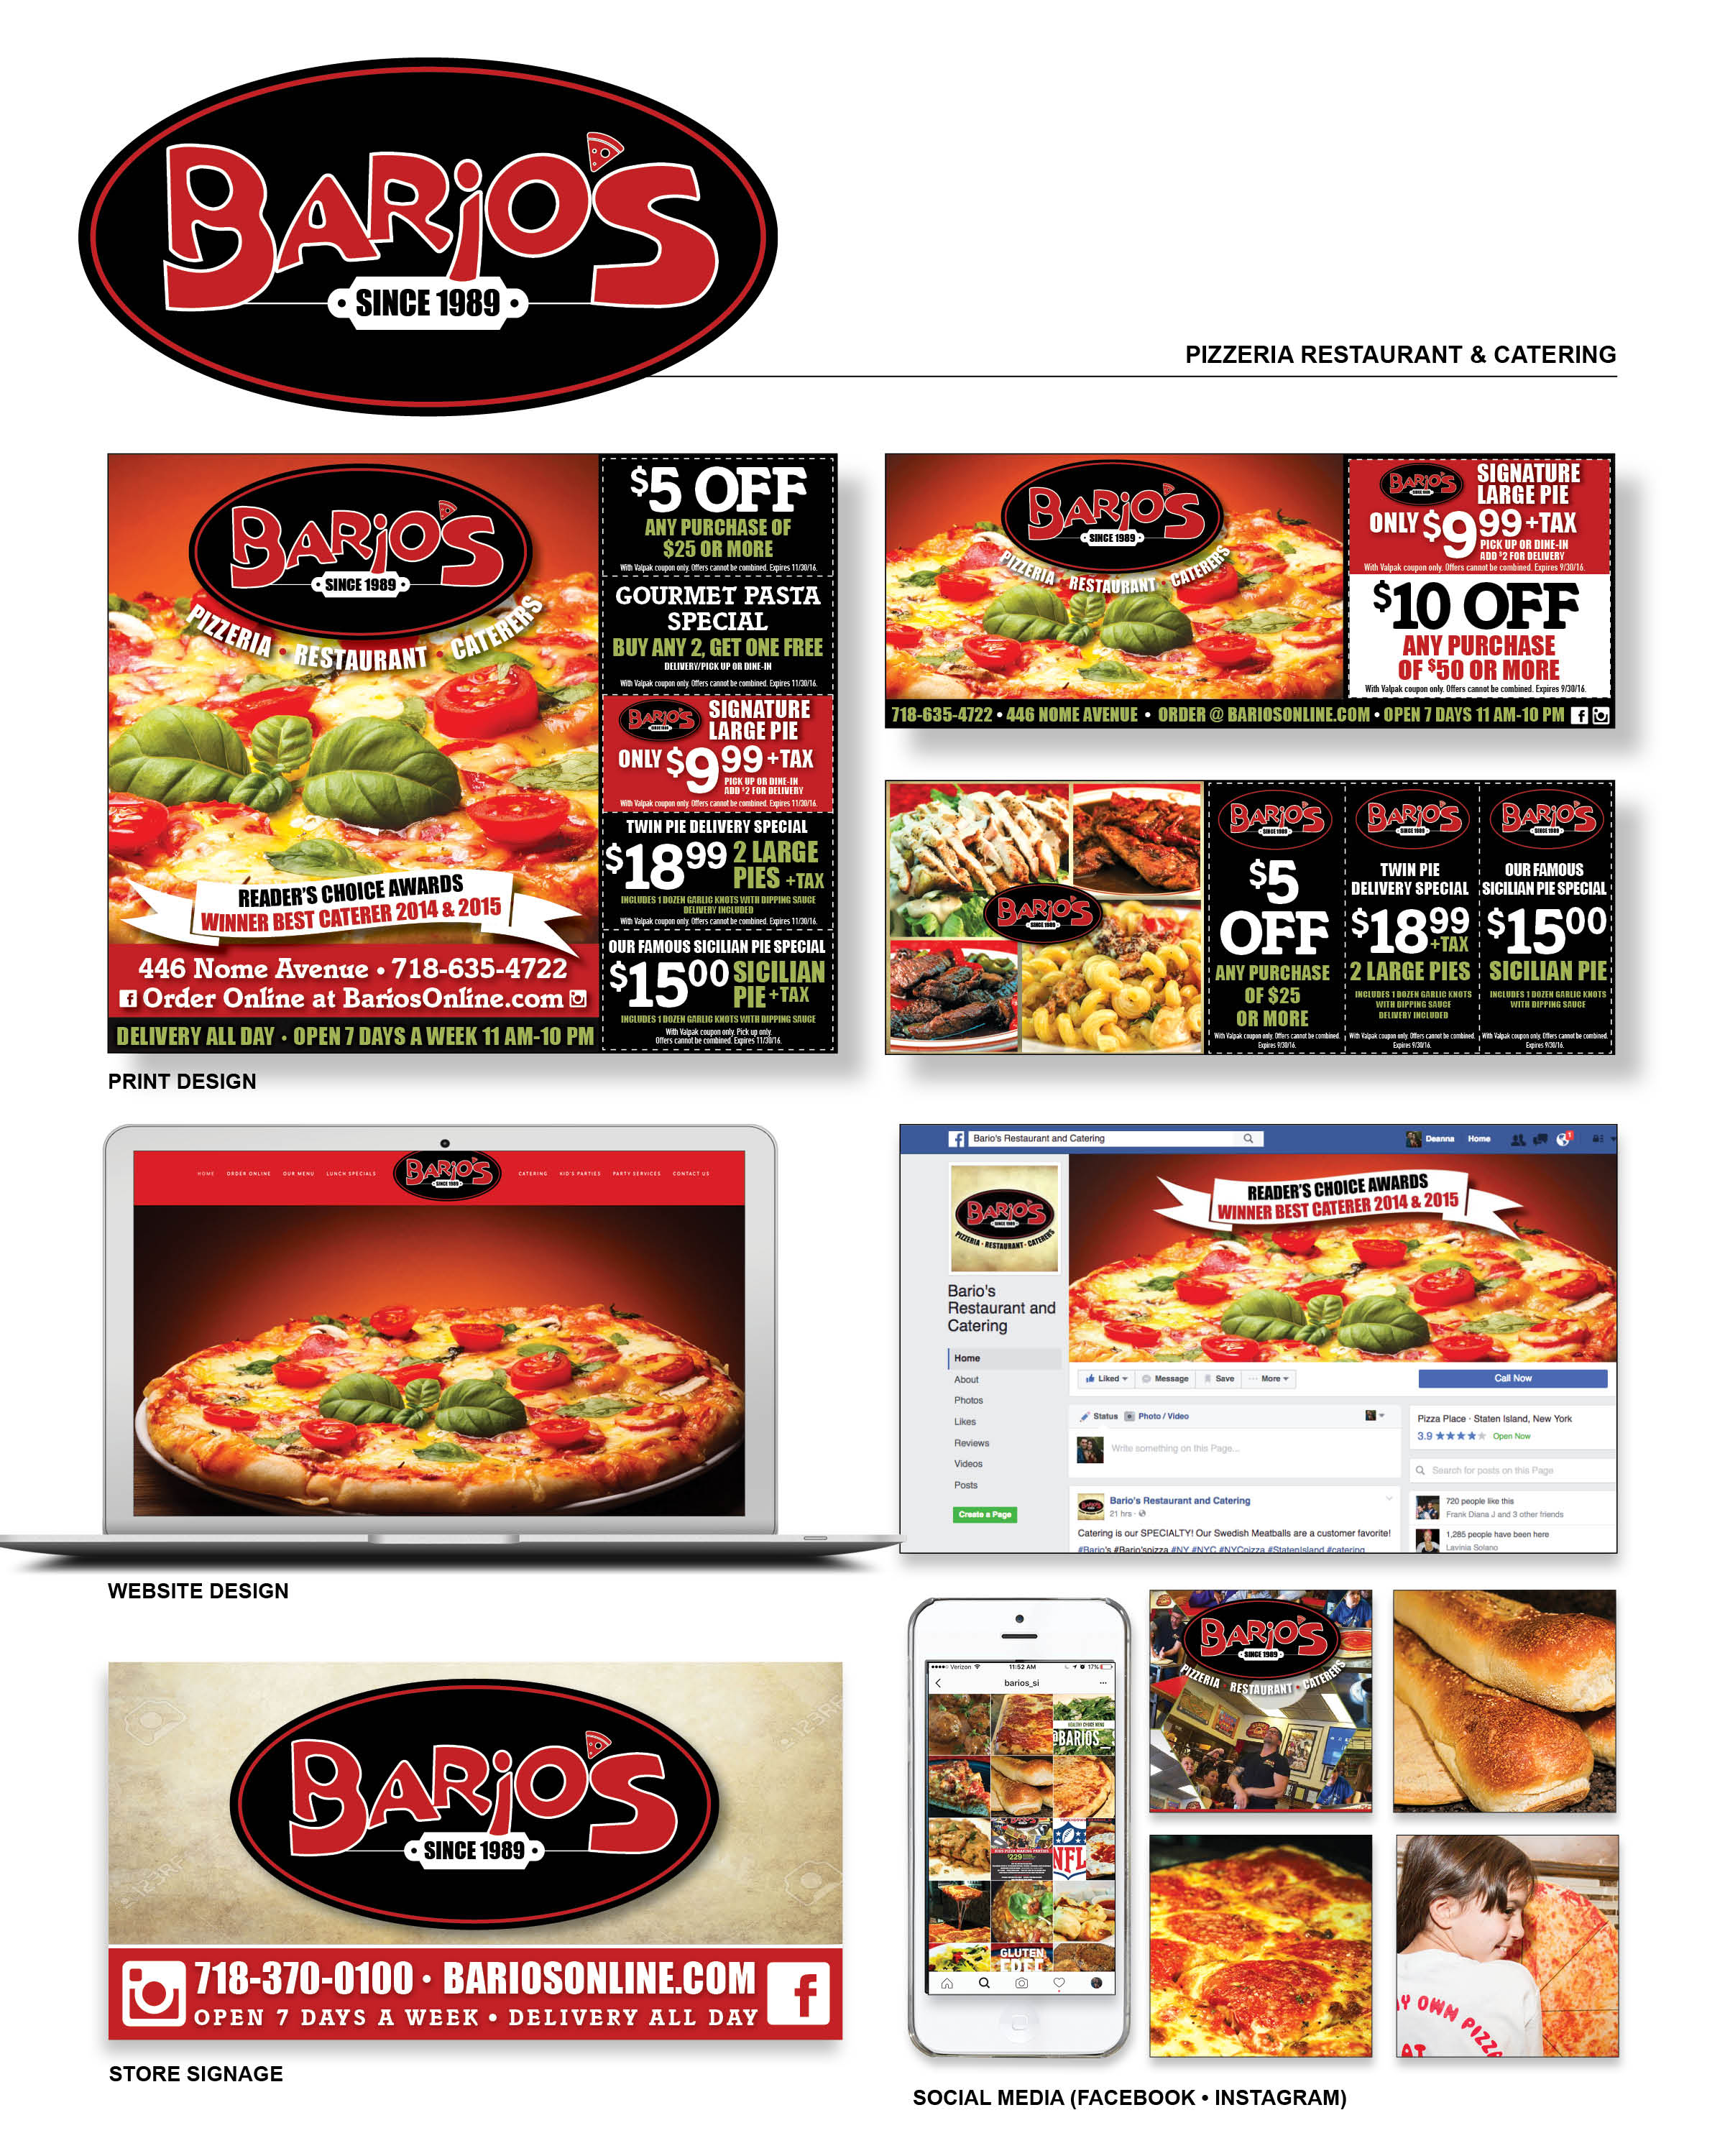 Bario's Pizzeria Restaurant & Catering - Powered by Valpak